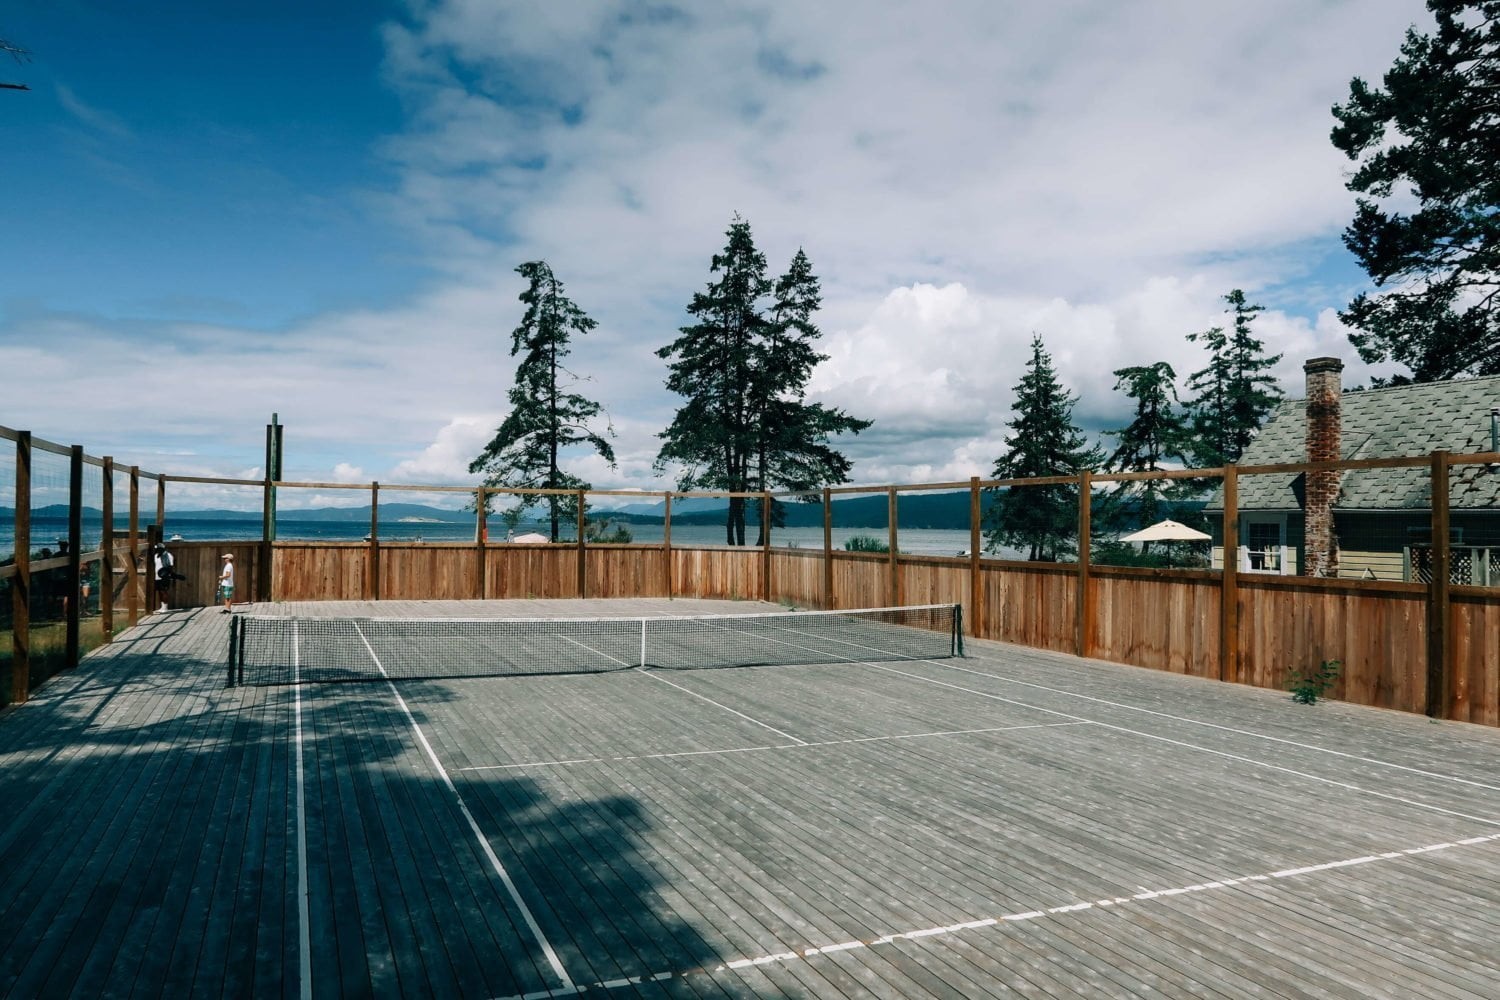 wooden tennis court on savary island